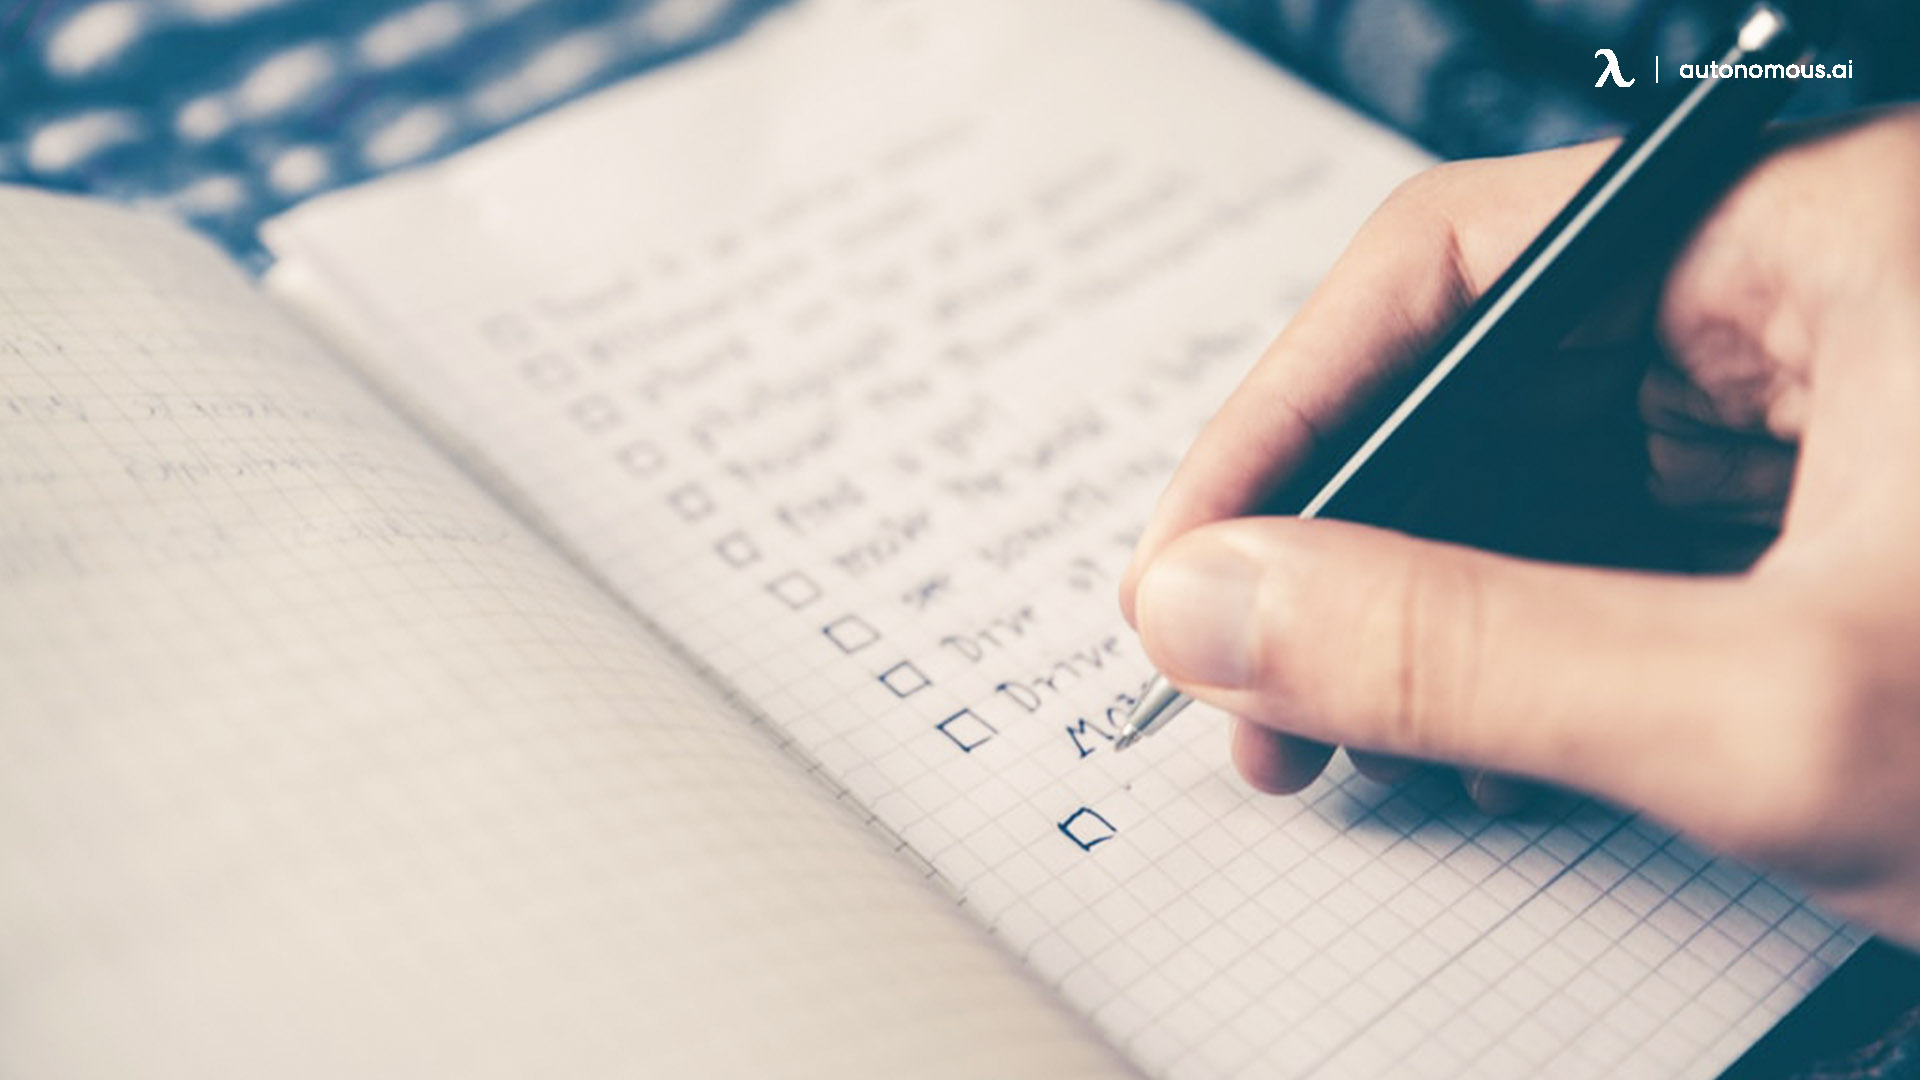 10 Essential Tips to Make a To-do List for Work